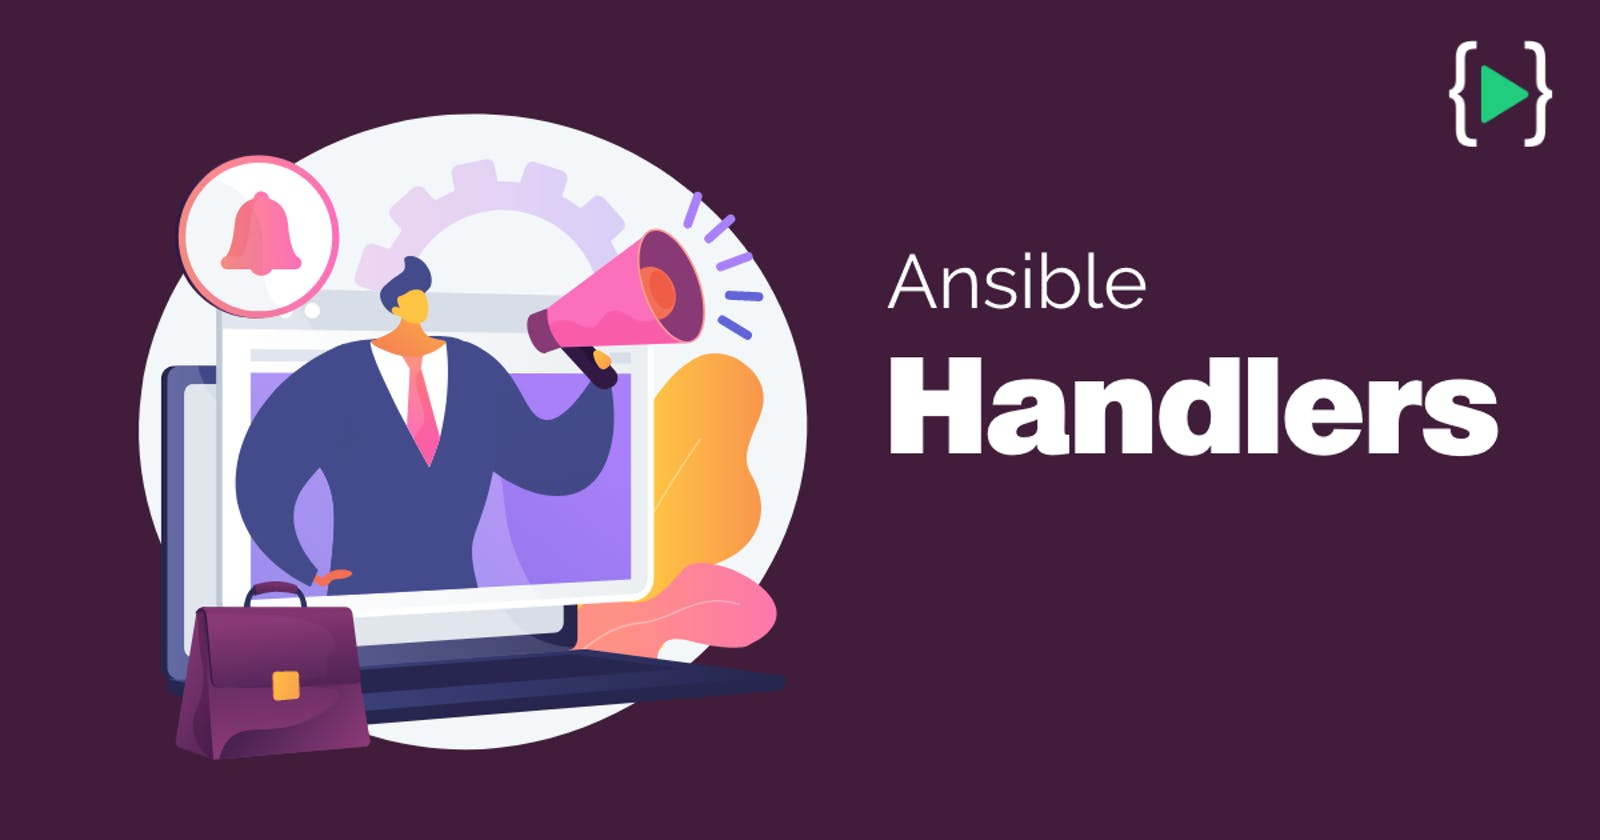 Everything about Ansible Handlers